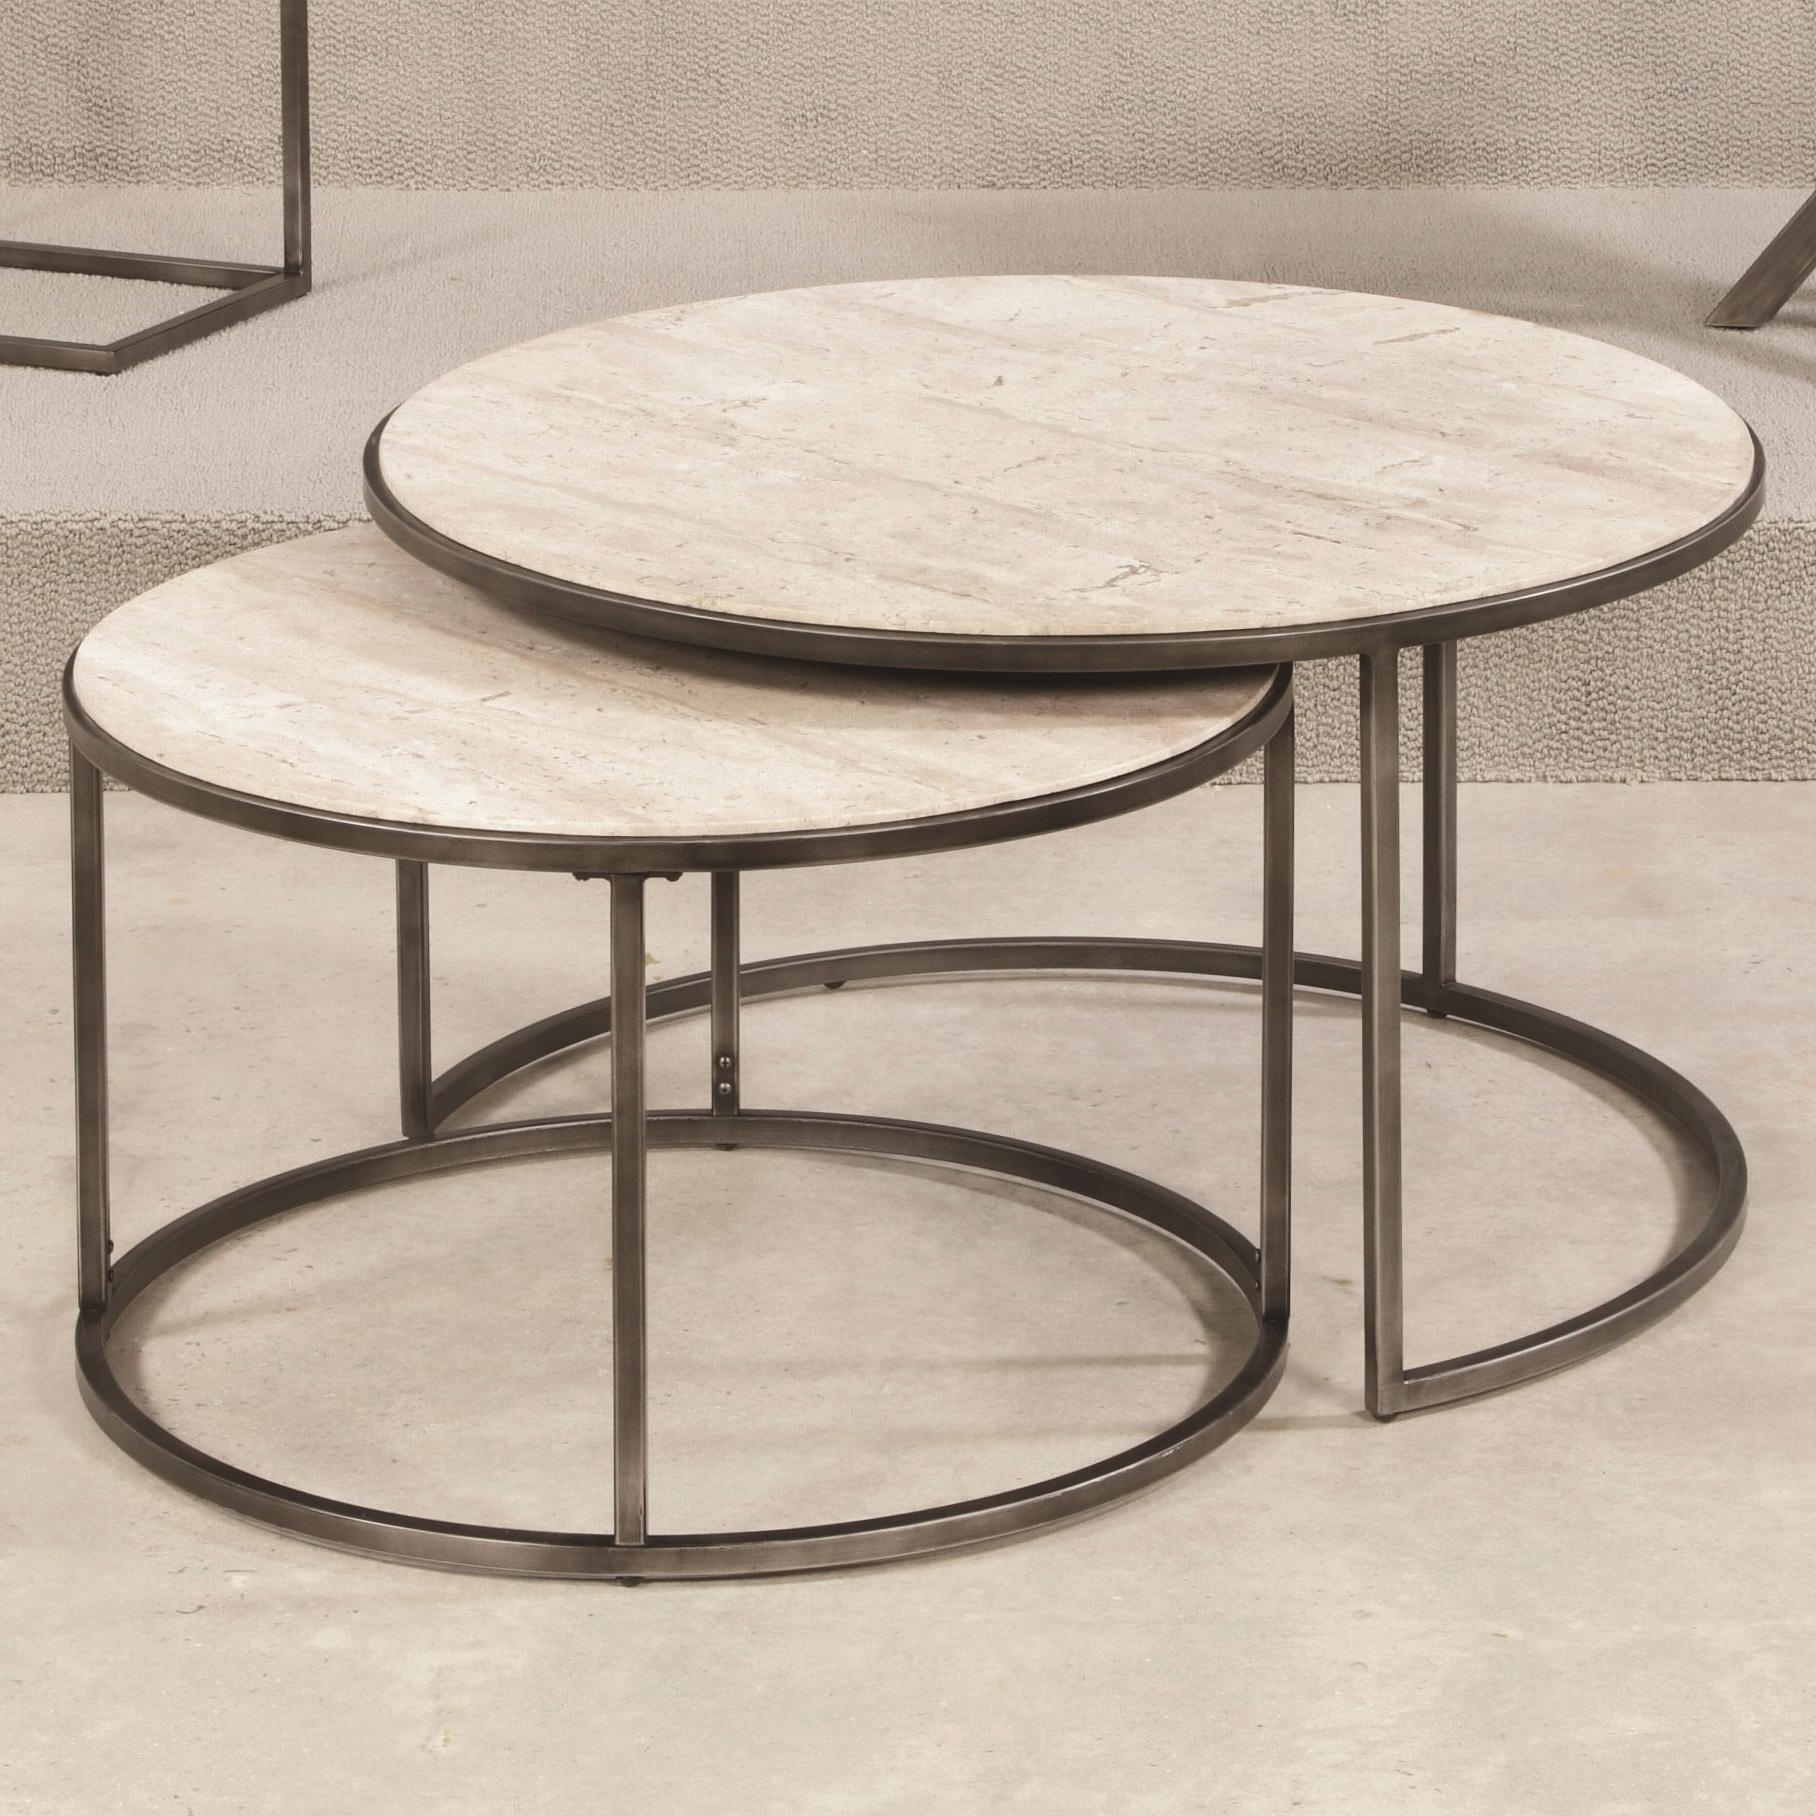 Hammary Modern Basics Round Cocktail Table With Nesting Tables With Regard To Well Known Elba Cocktail Tables (View 16 of 20)